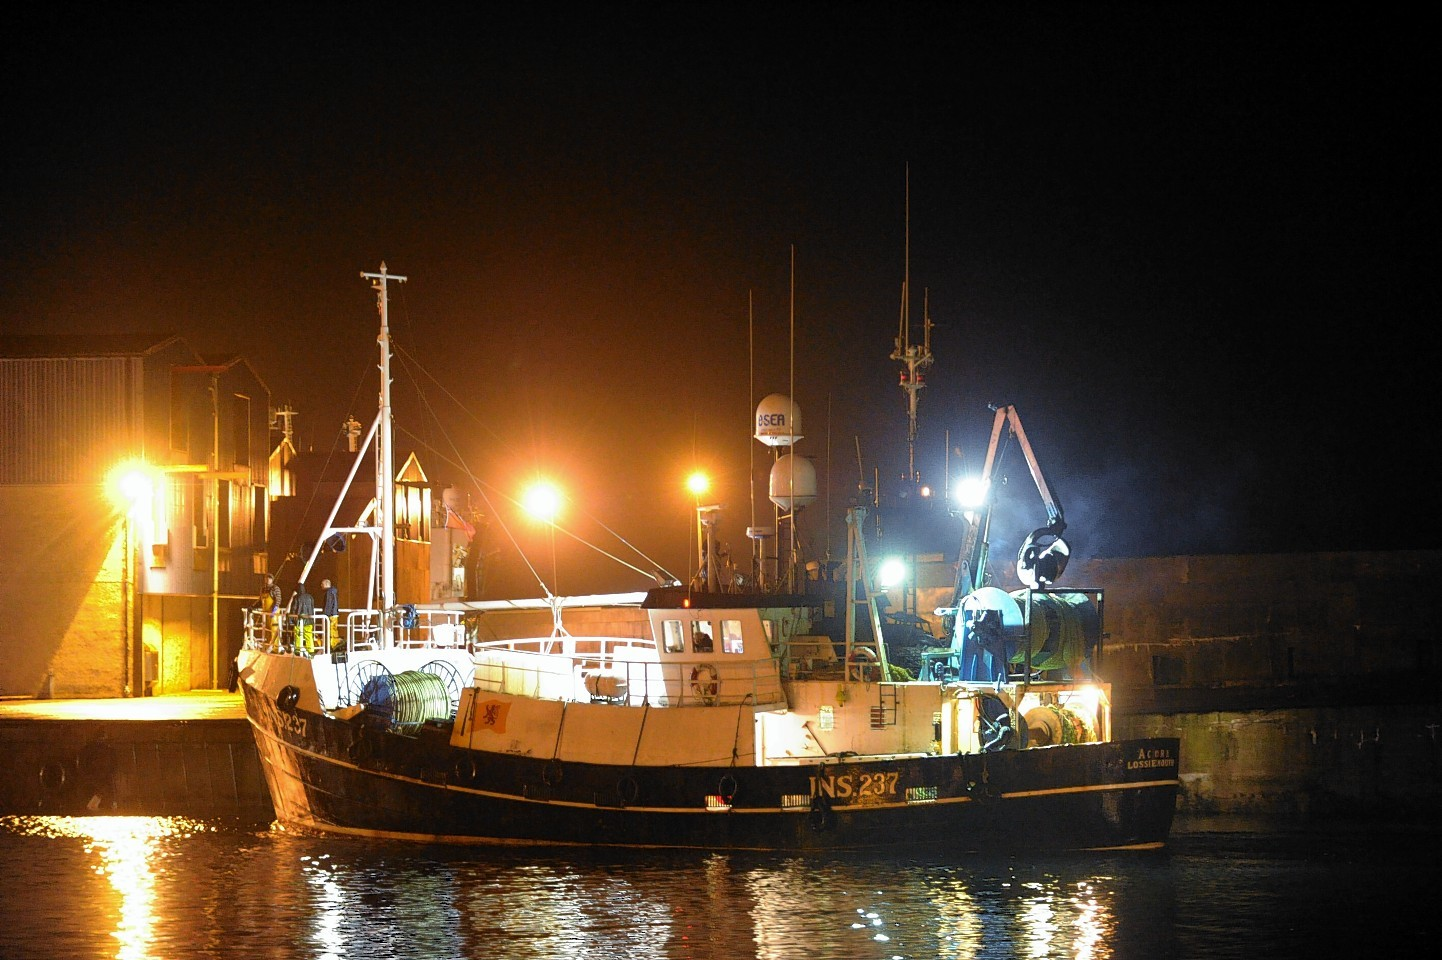 The Acorn arrived at Fraserburgh last night